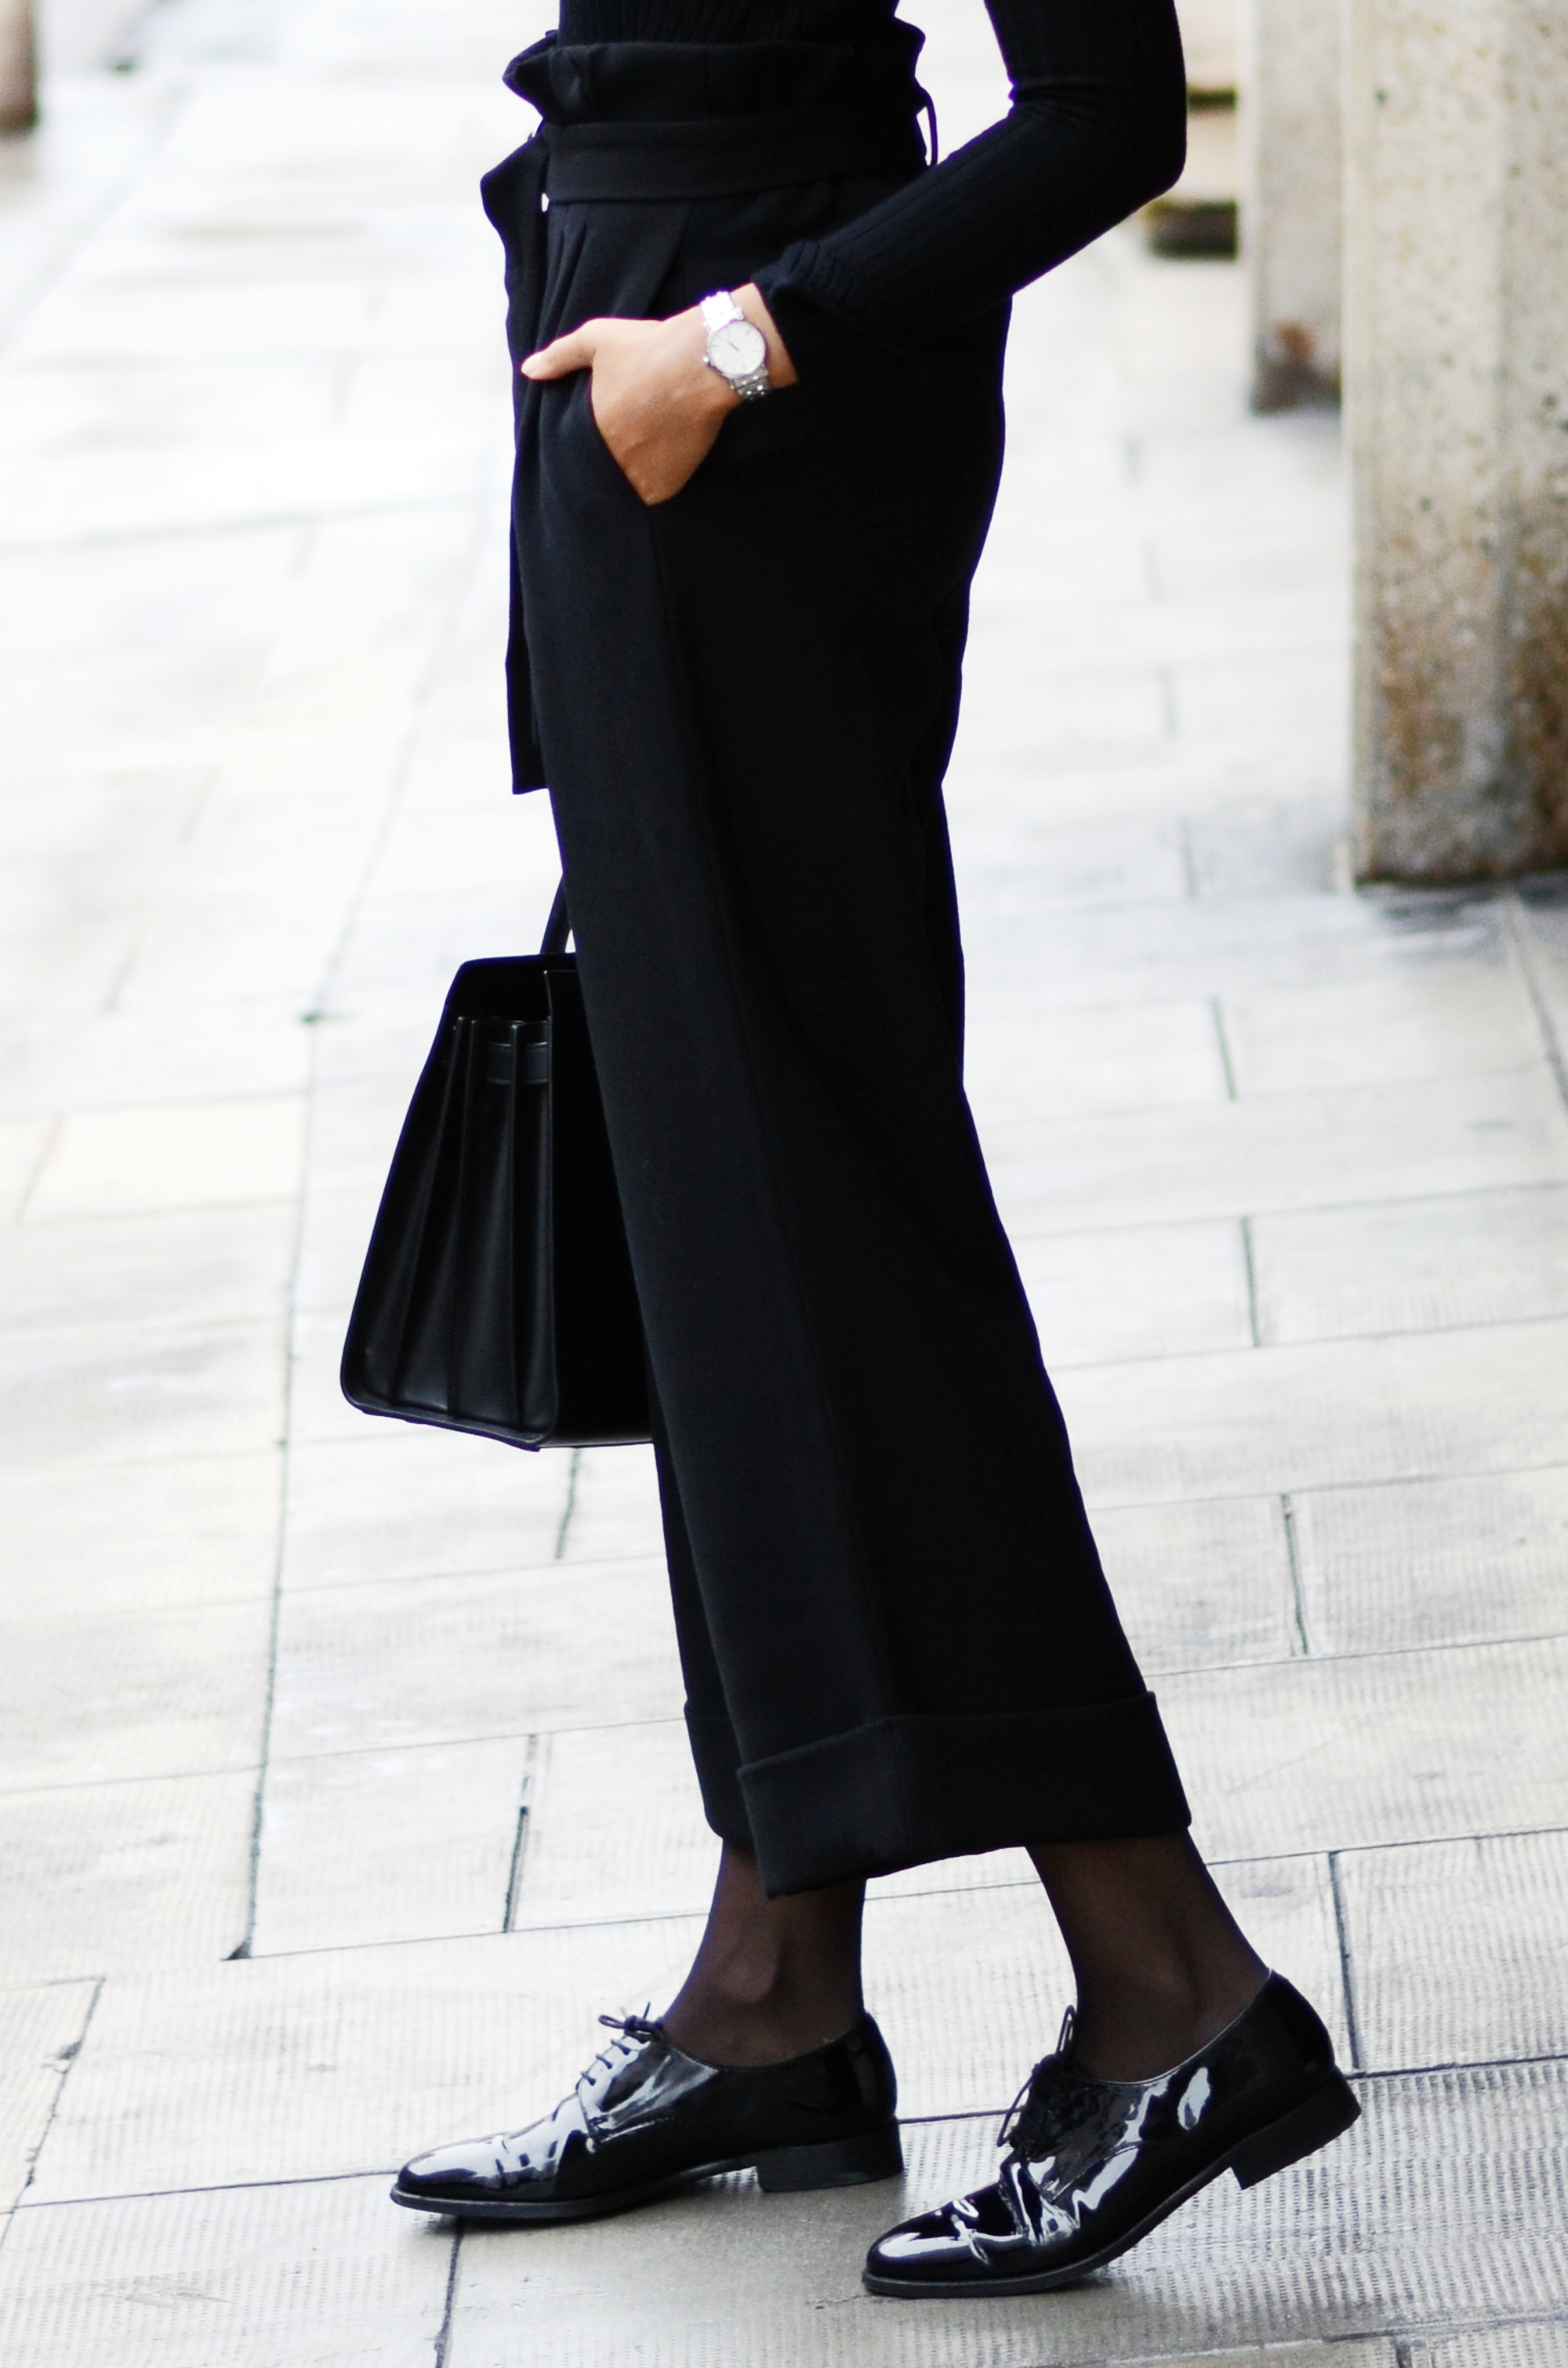 mercredie-blog-mode-geneve-suisse-fashion-blogger-all-black-outfit-chic-saint-laurent-sac-de-jour-black-matte-seiko-ultra-thin-ladies-quartz-sxb429p1-derbies-vernies-shoepassion-102